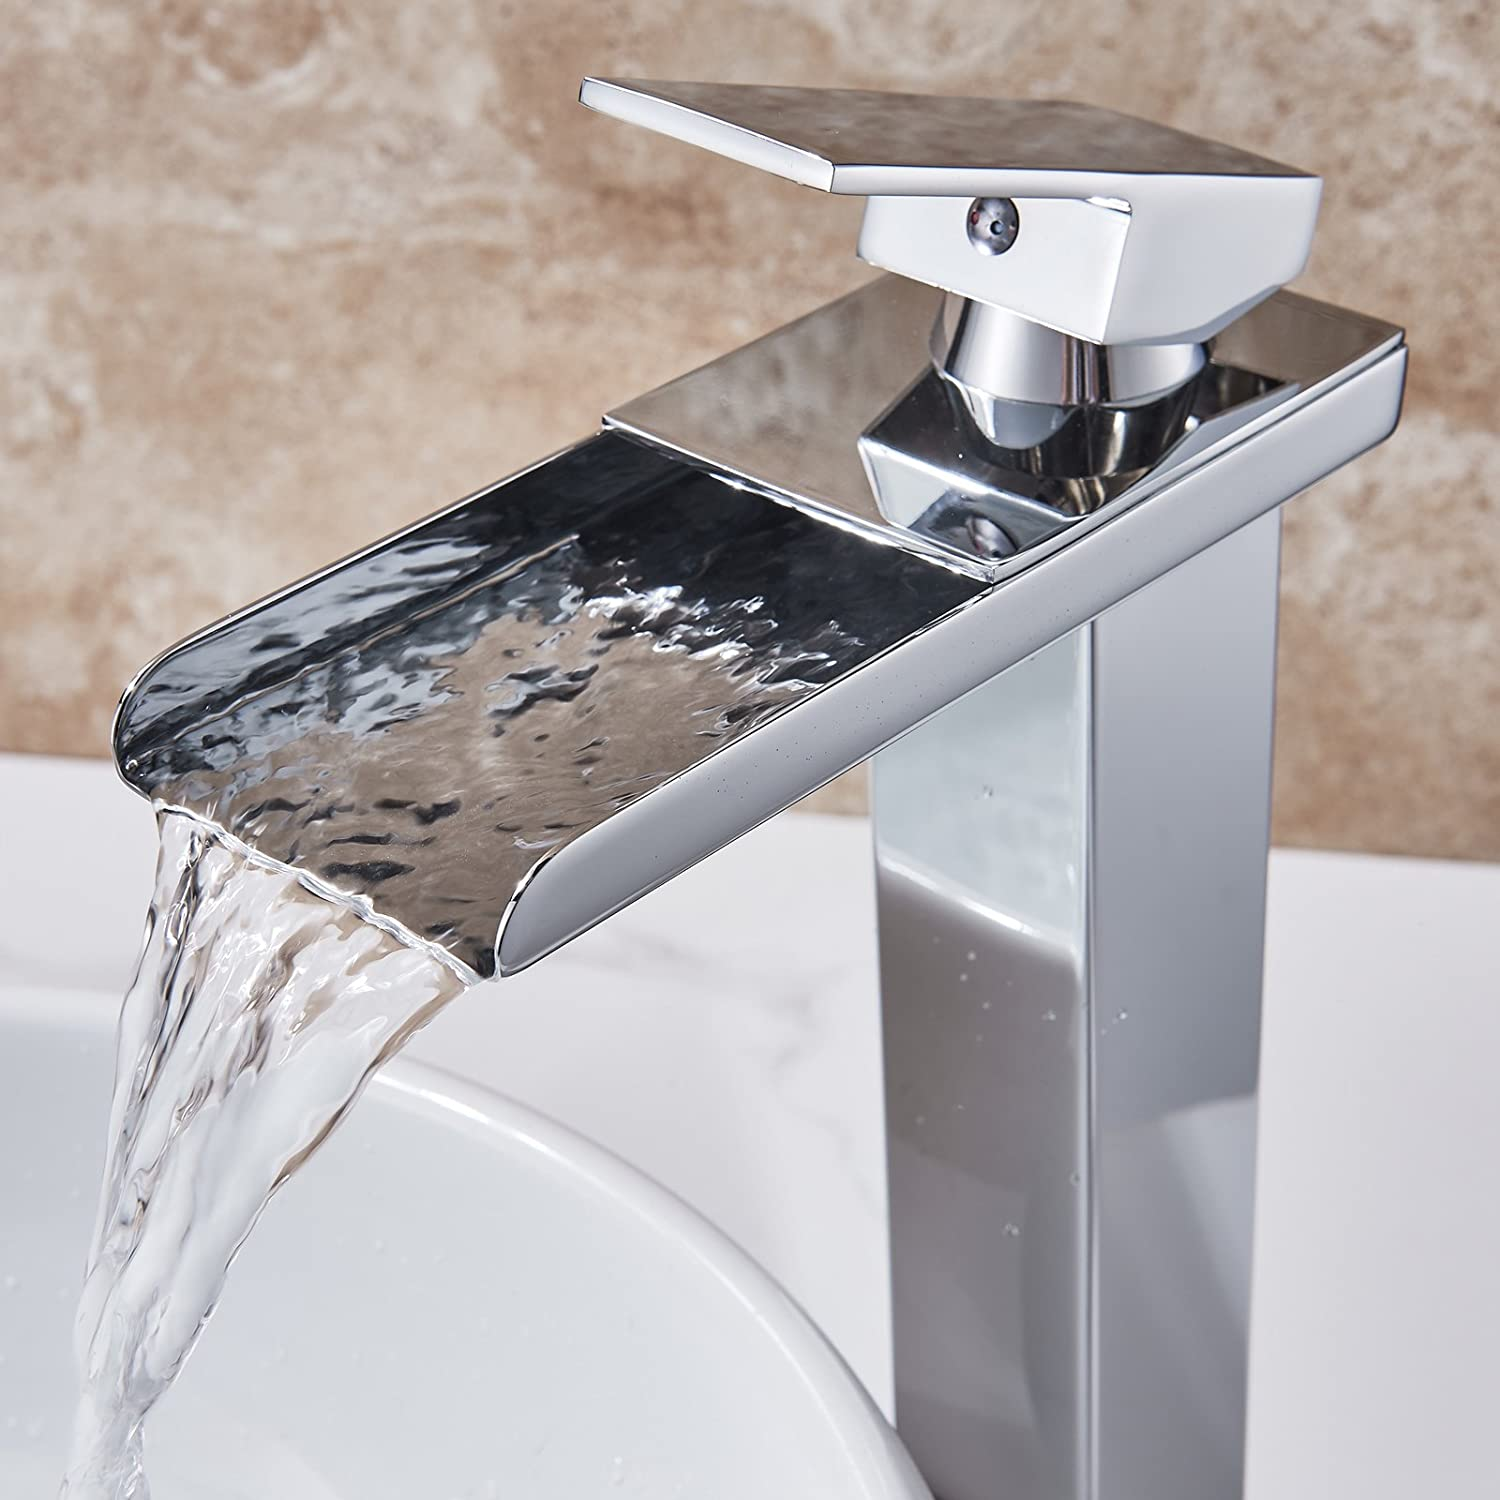 Senlesen Tall Waterfall Spout Bathroom Sink Vessel Faucet Basin Mixer Tap Chrome Finished